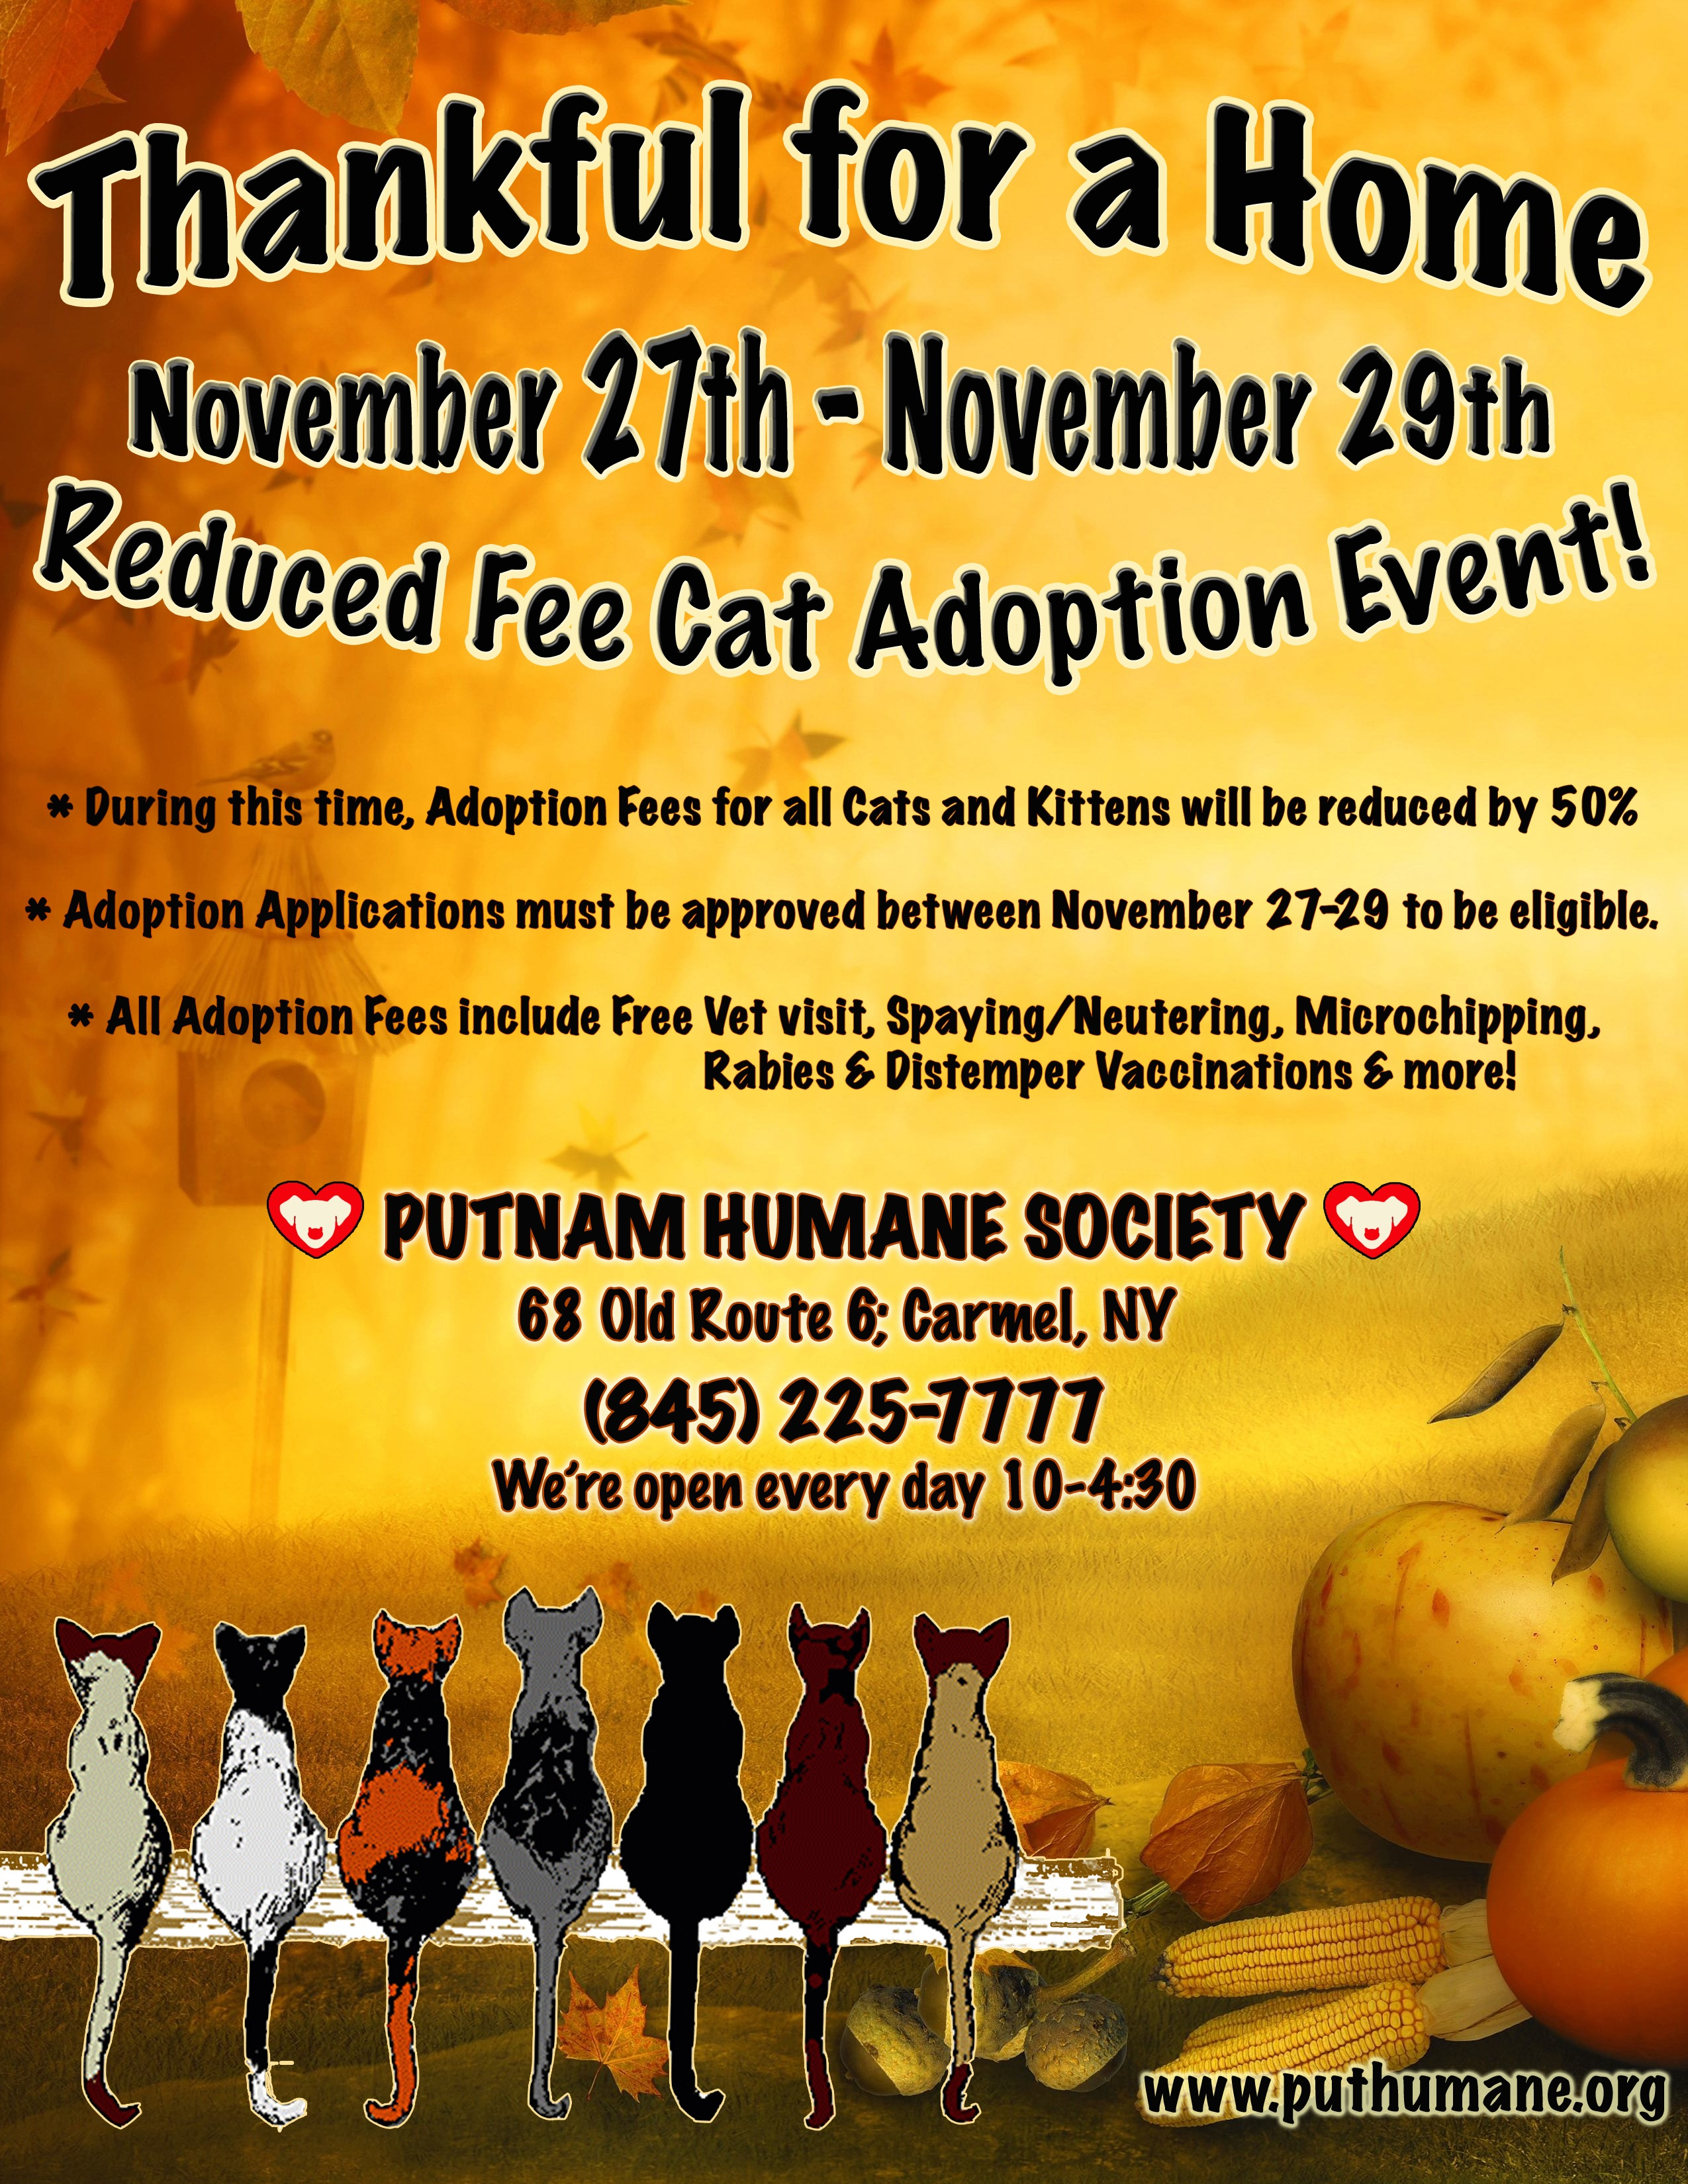 Upcoming Events Thankful For A Home Reduced Fee Cat